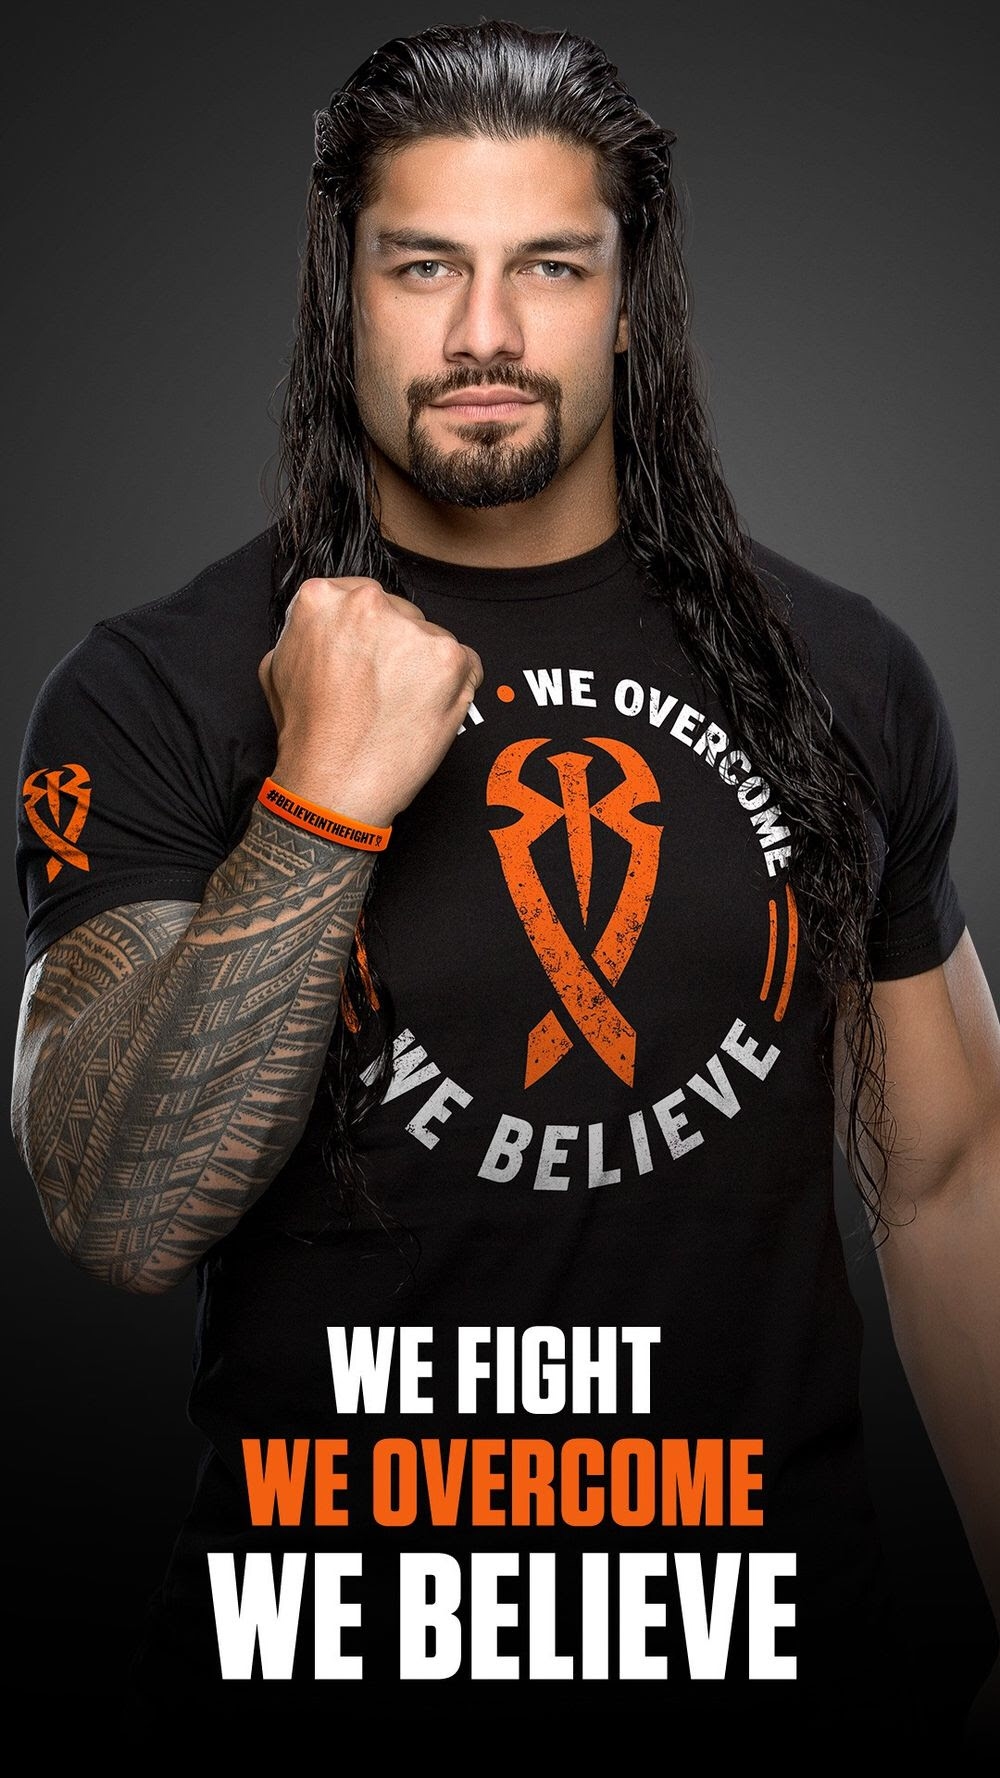 I Bought This Shirt Can T Wait For It To Come In Wwe Superstar Roman Reigns Roman Reigns Roman Reigns Wwe Champion